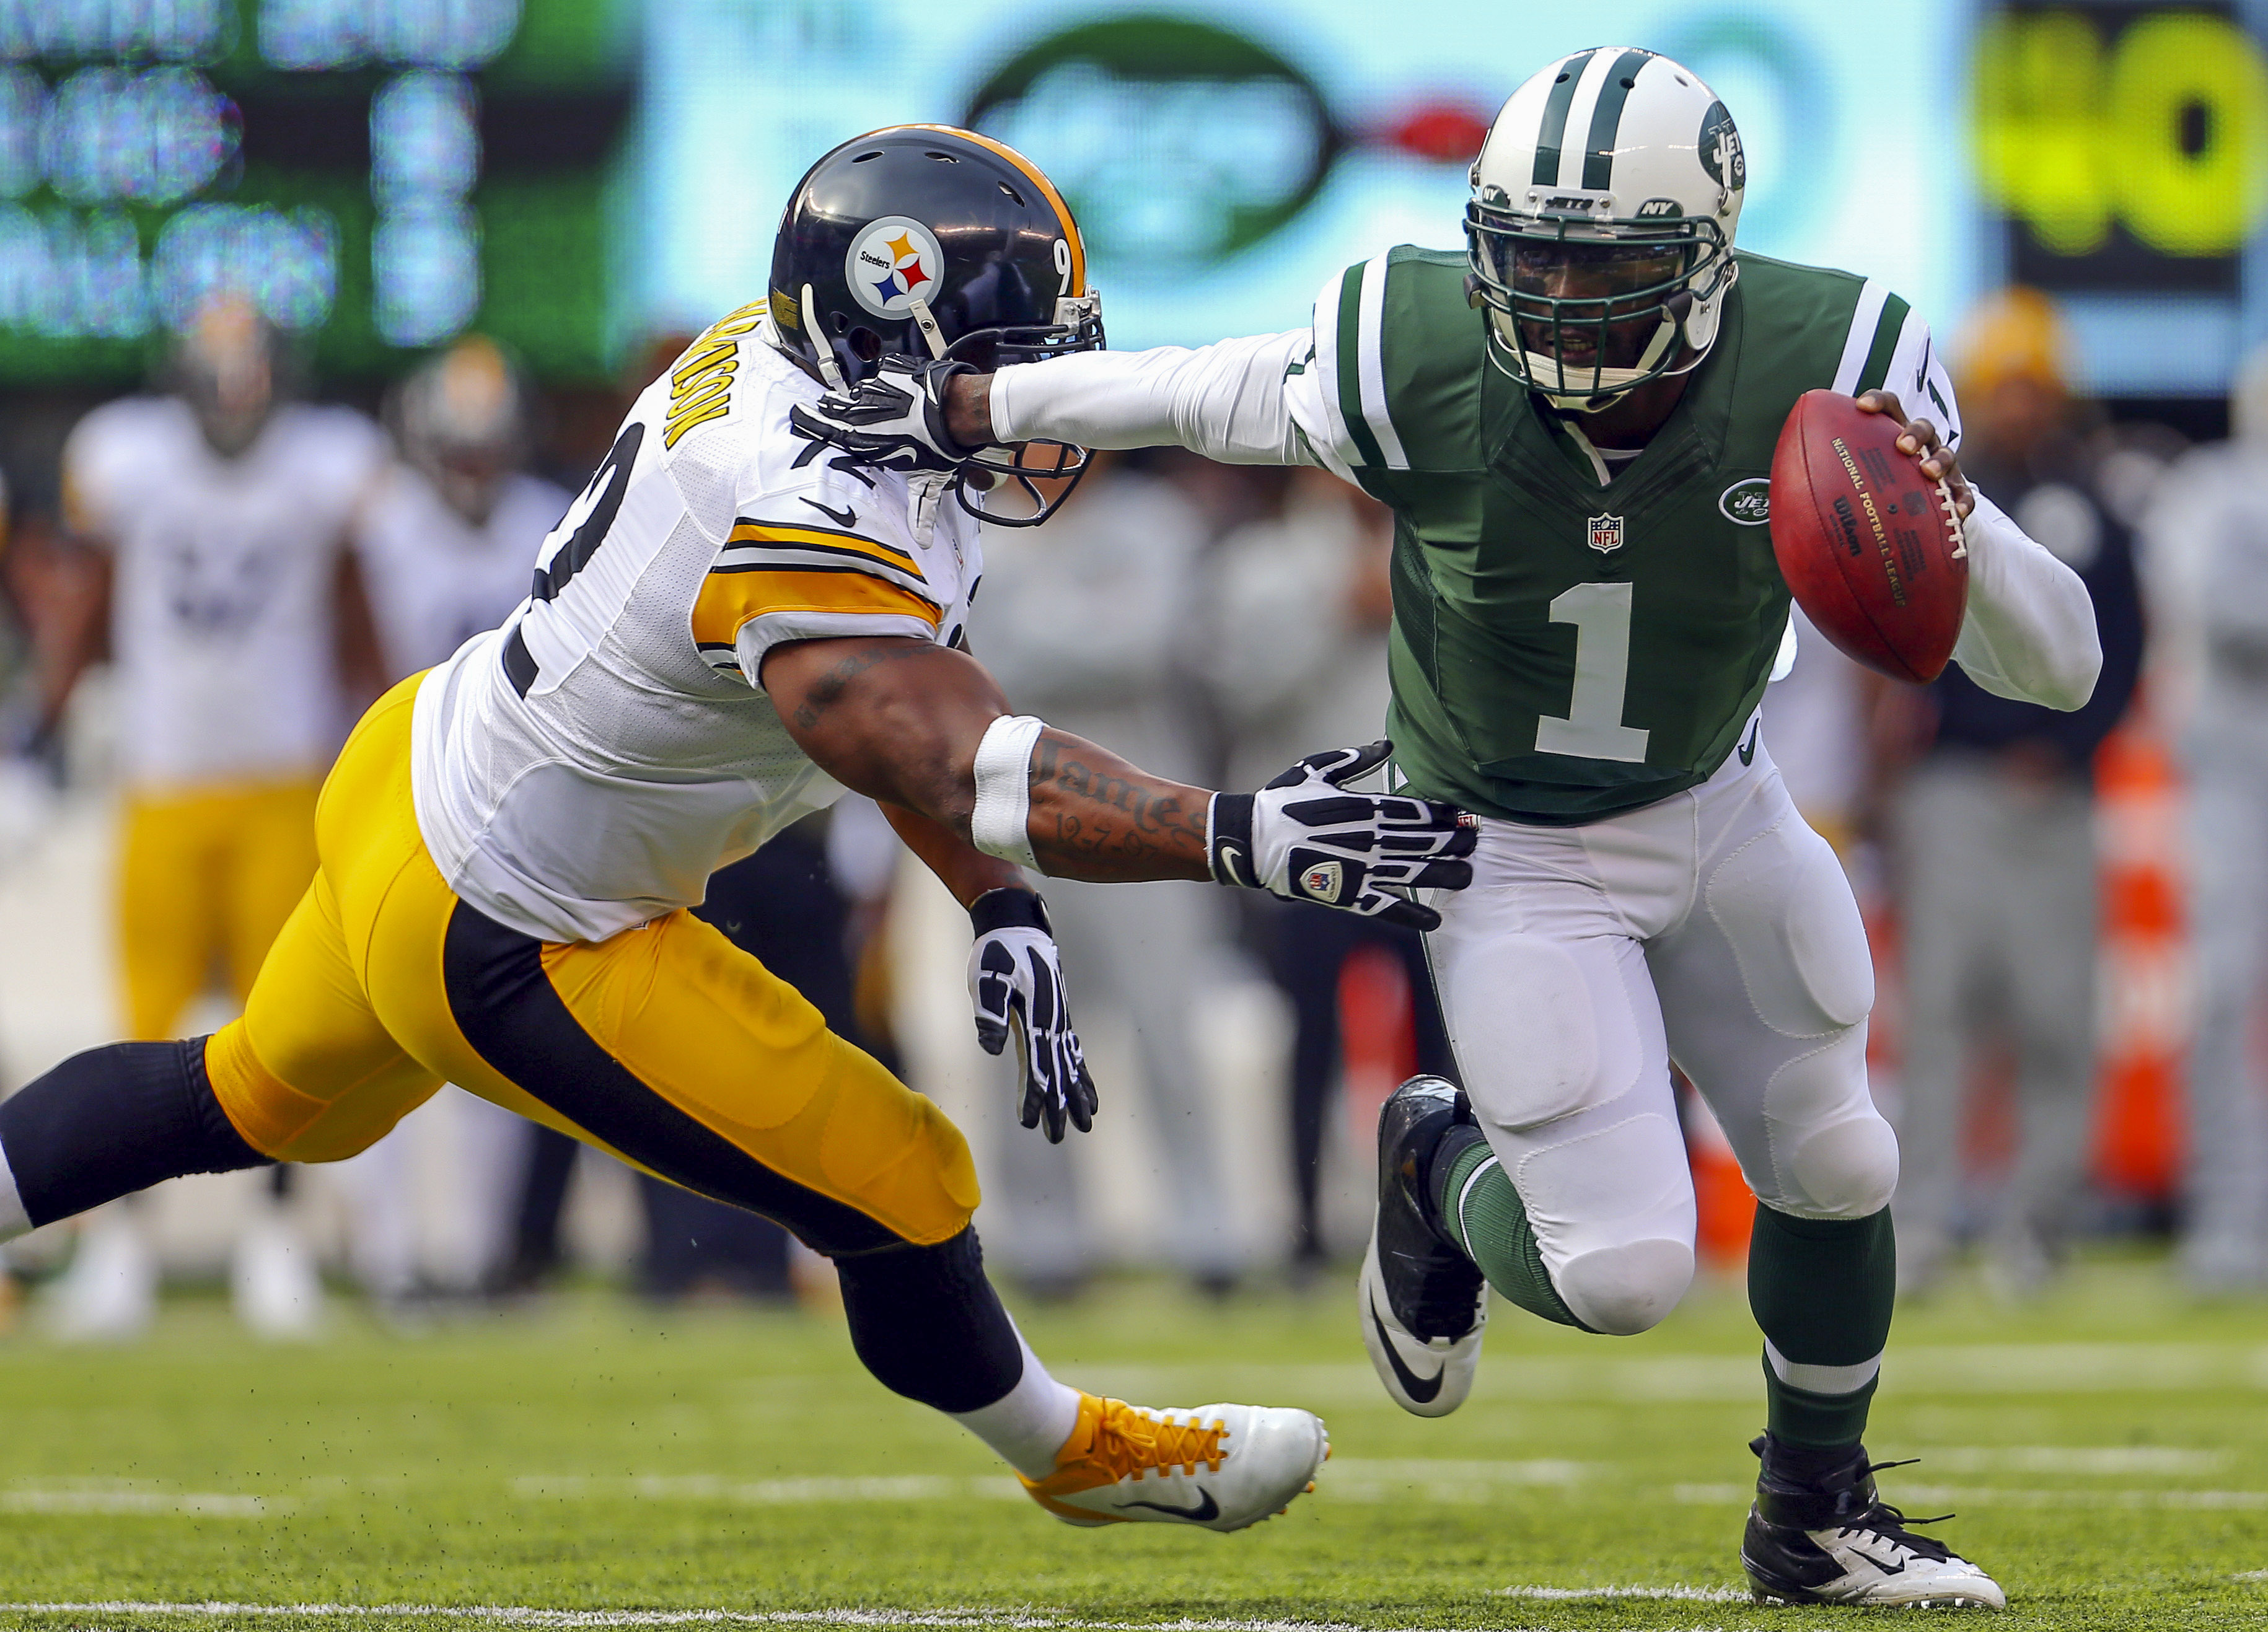 Mike Vick Leads Jets Past Steelers